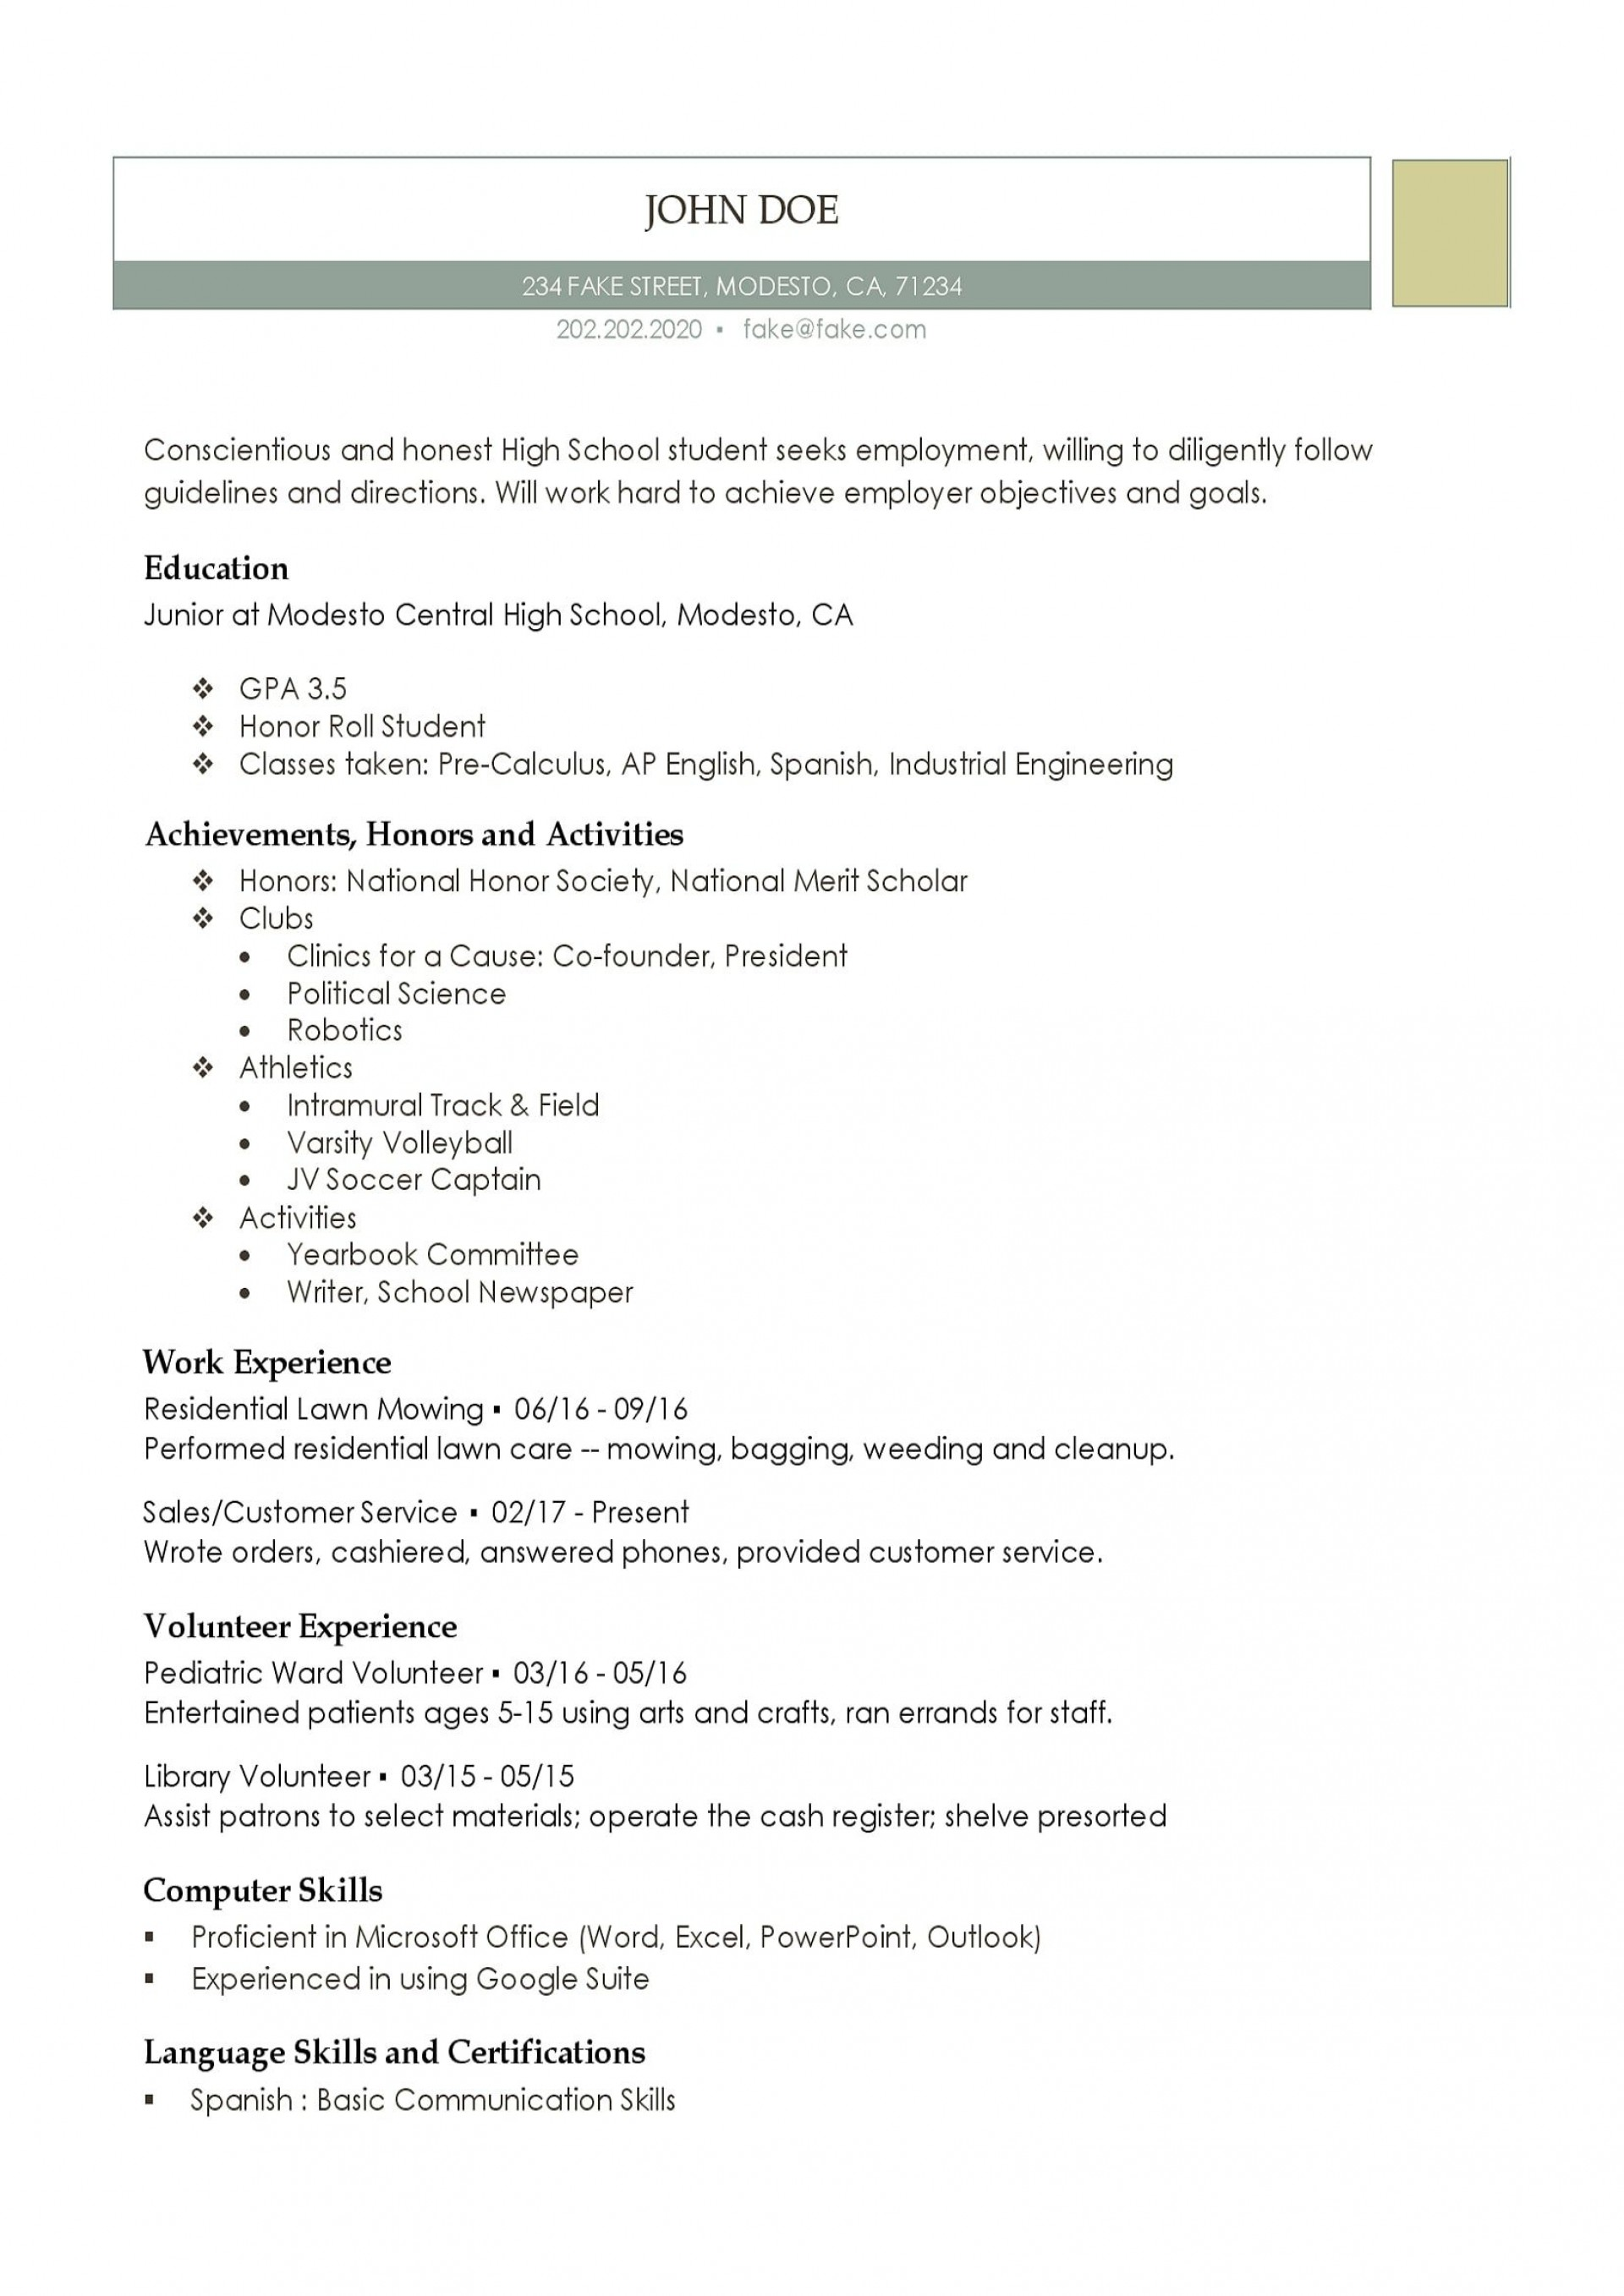 002 Incredible Student Resume Template Word Image  Download College Microsoft Free1920